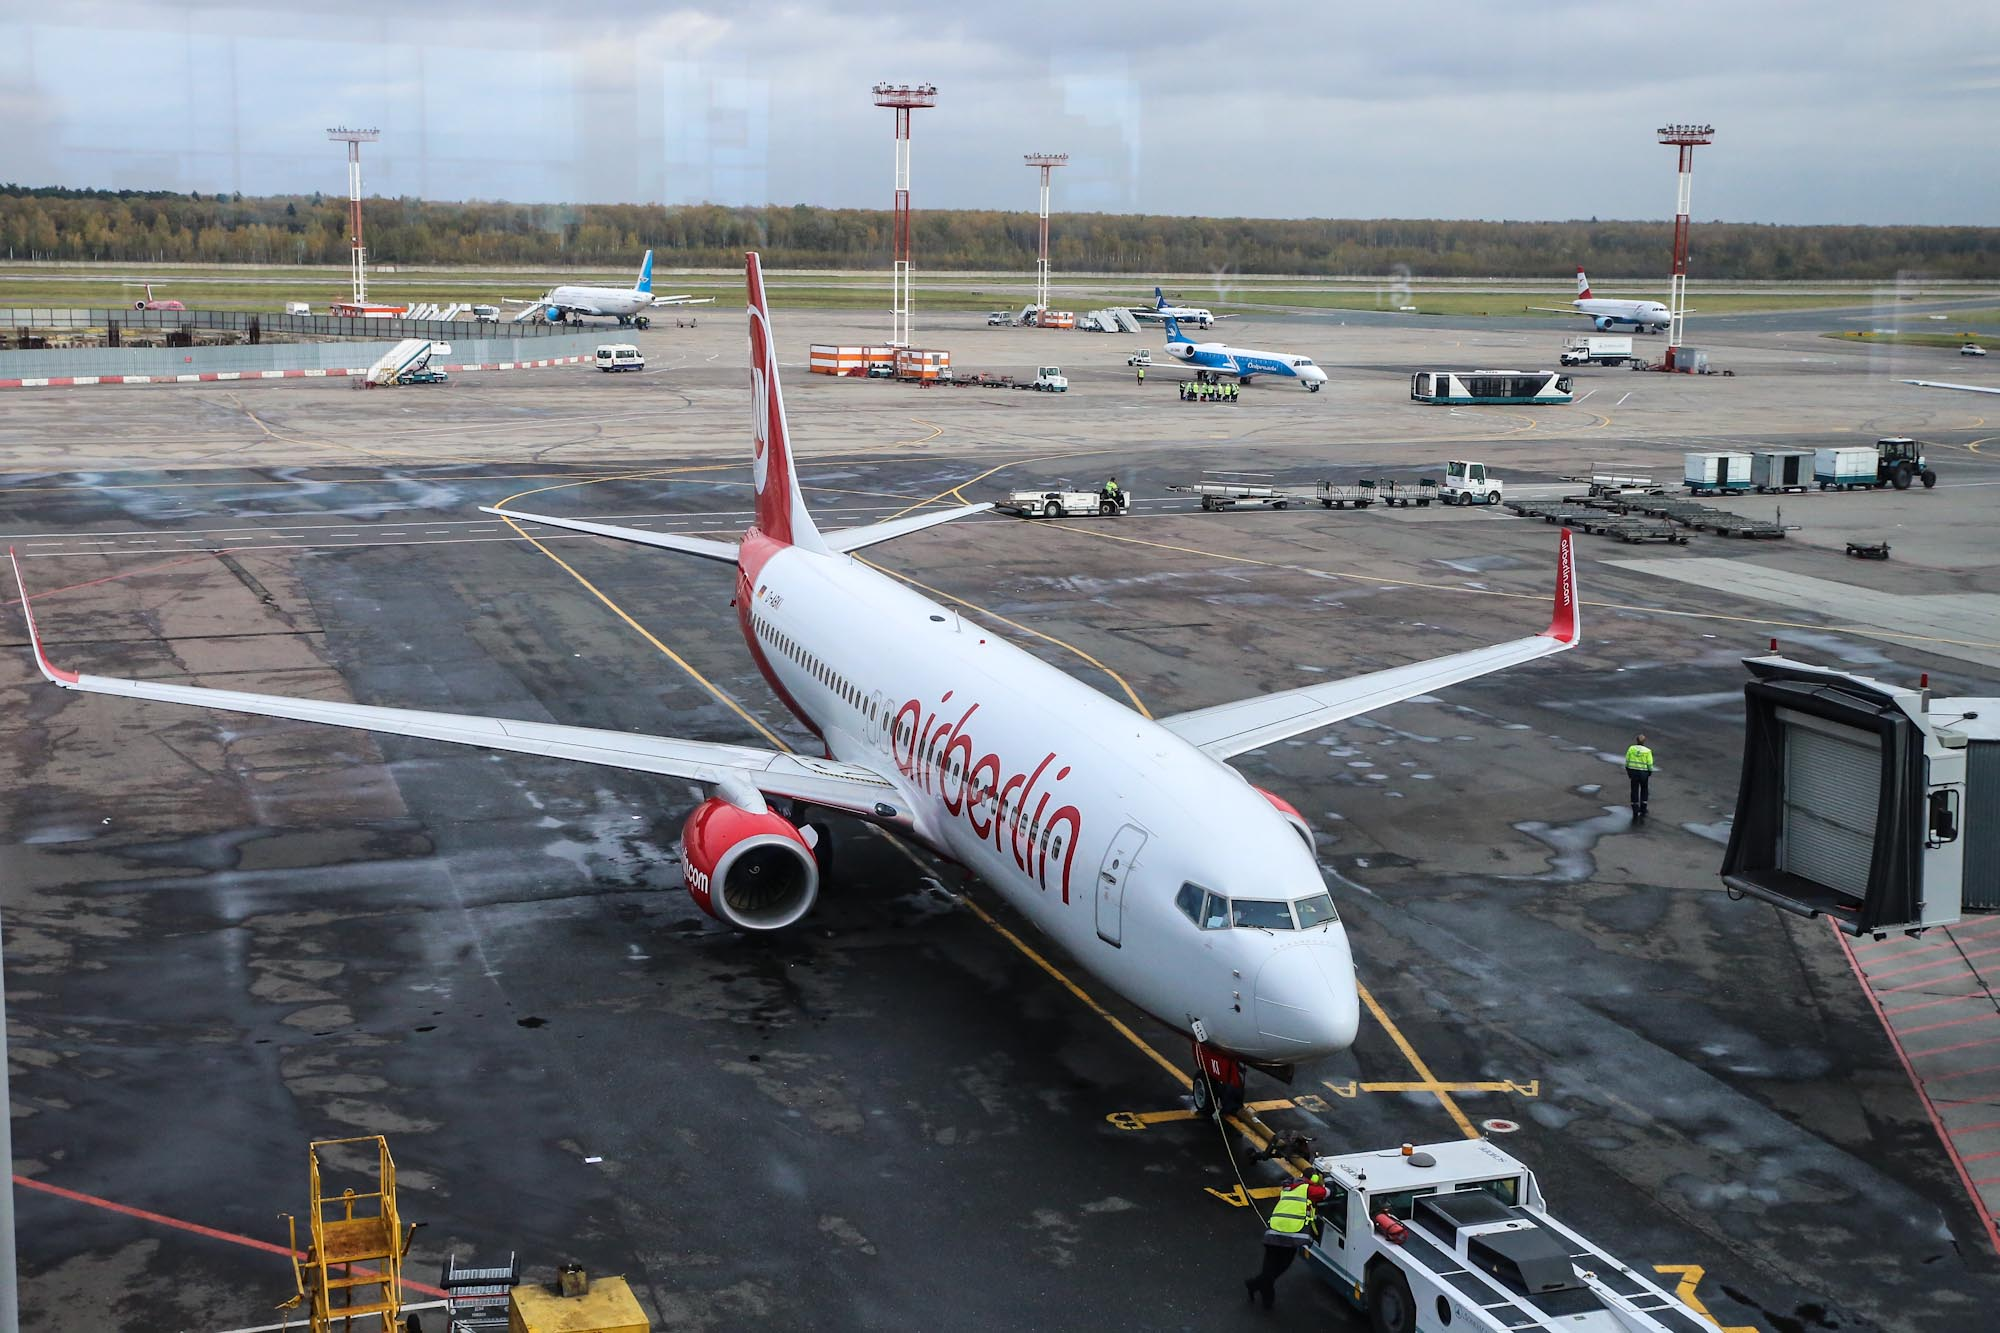 Boeing-737-800 operated by Air Berlin at the airport Domodedovo